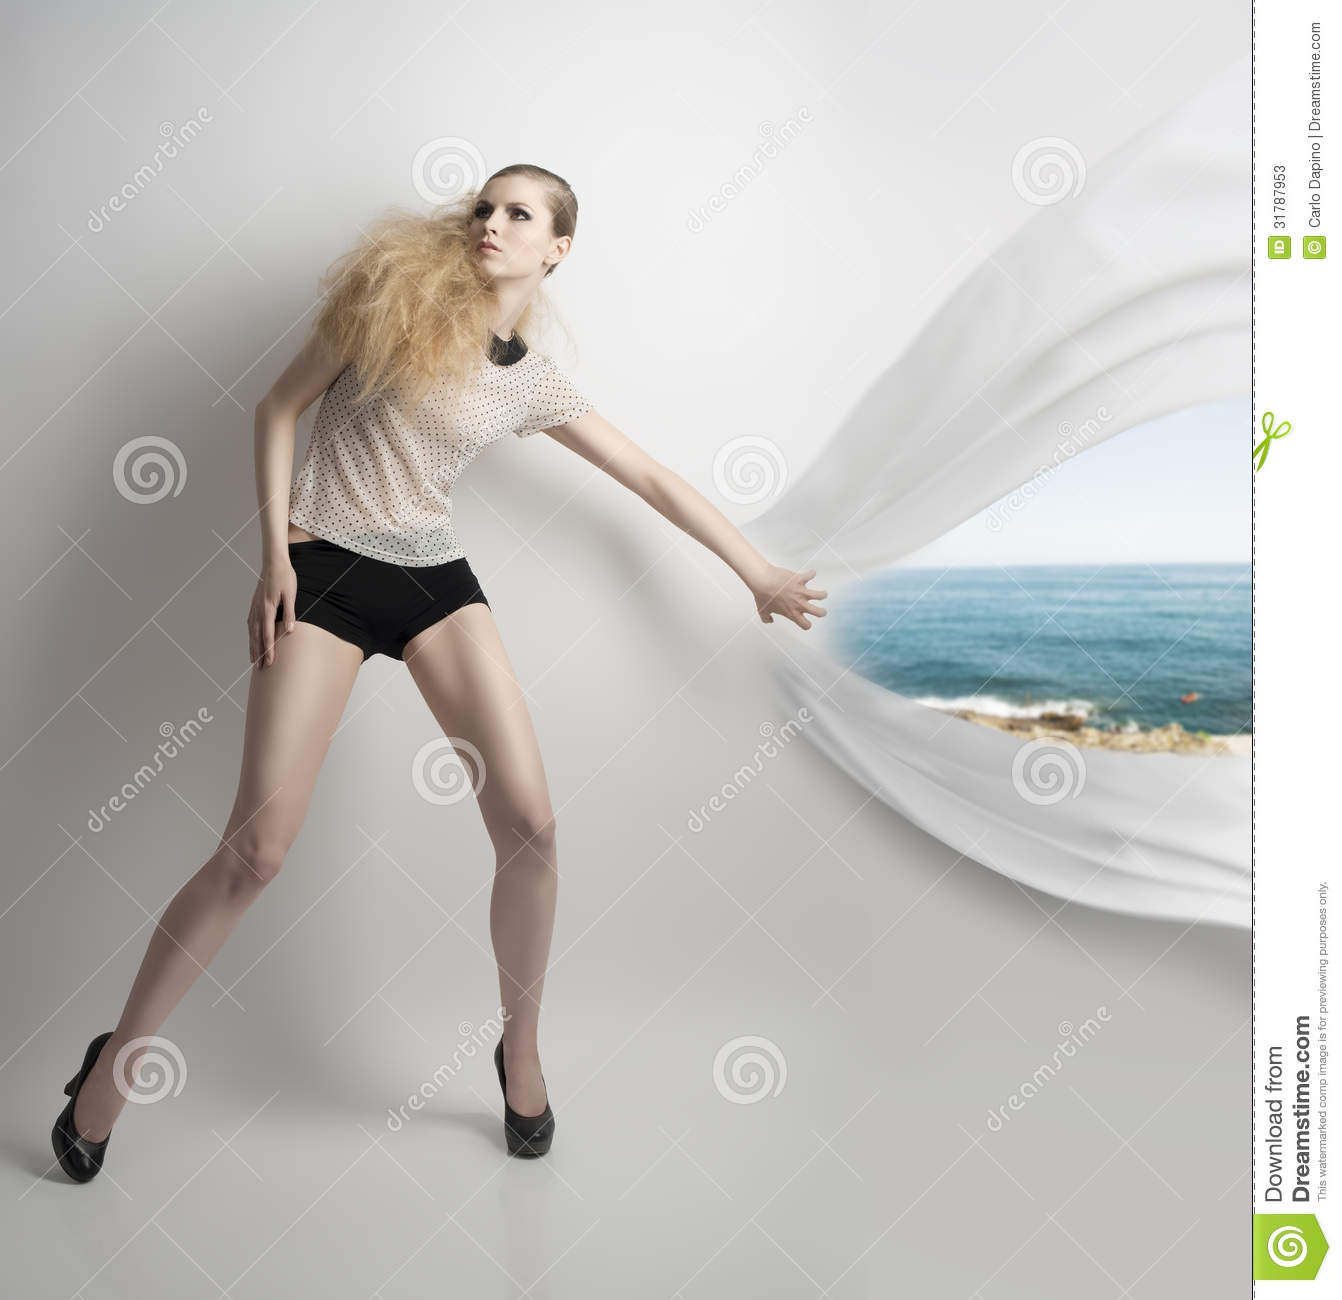 lean girl with fashion style stock photos